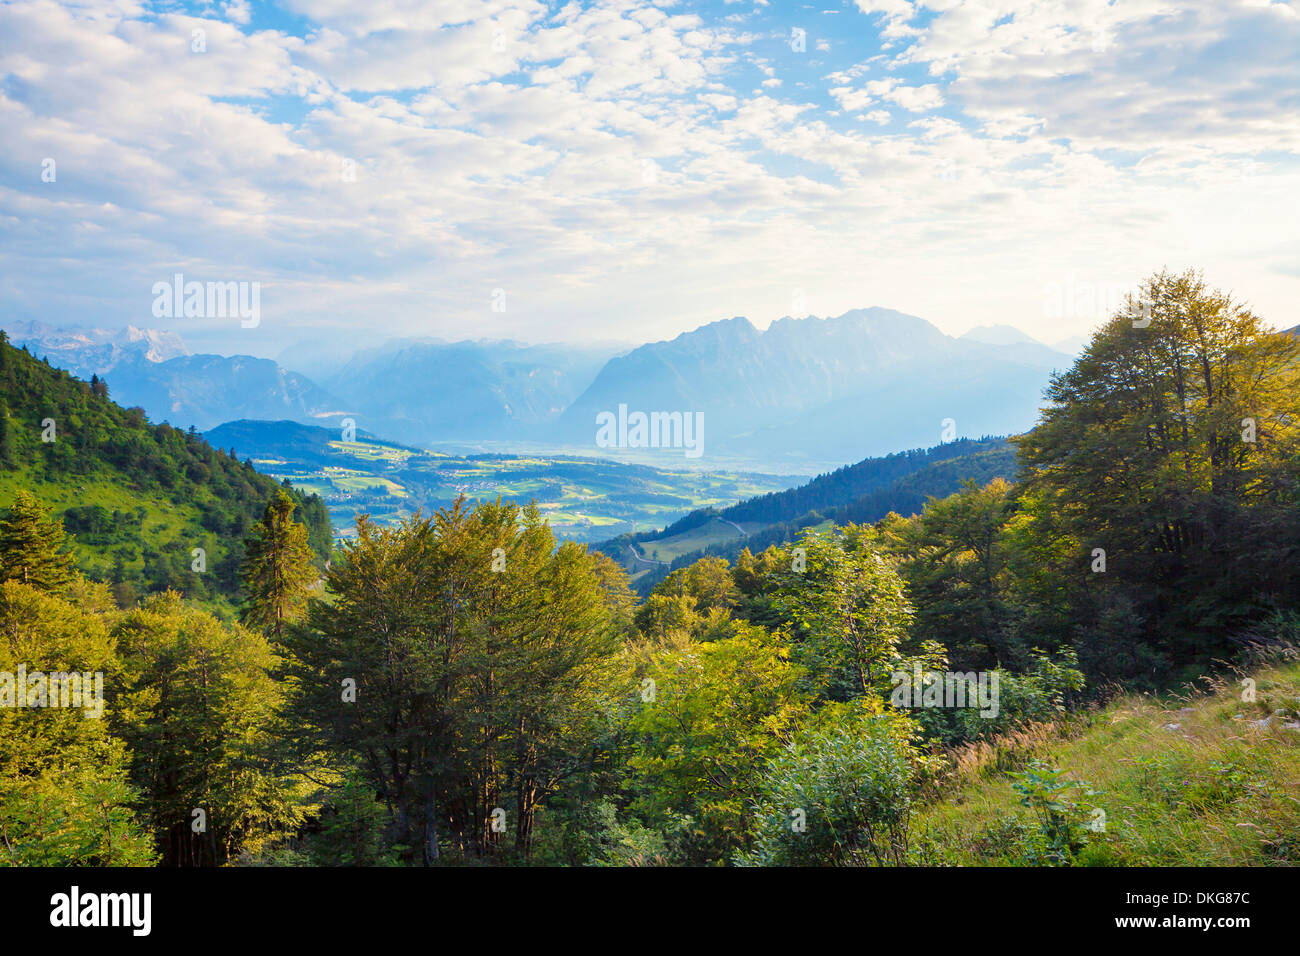 View over Salzachtal to Hoher Goell, Berchtesgaden Alps, Salzburger Land, Austria, Europe Stock Photo